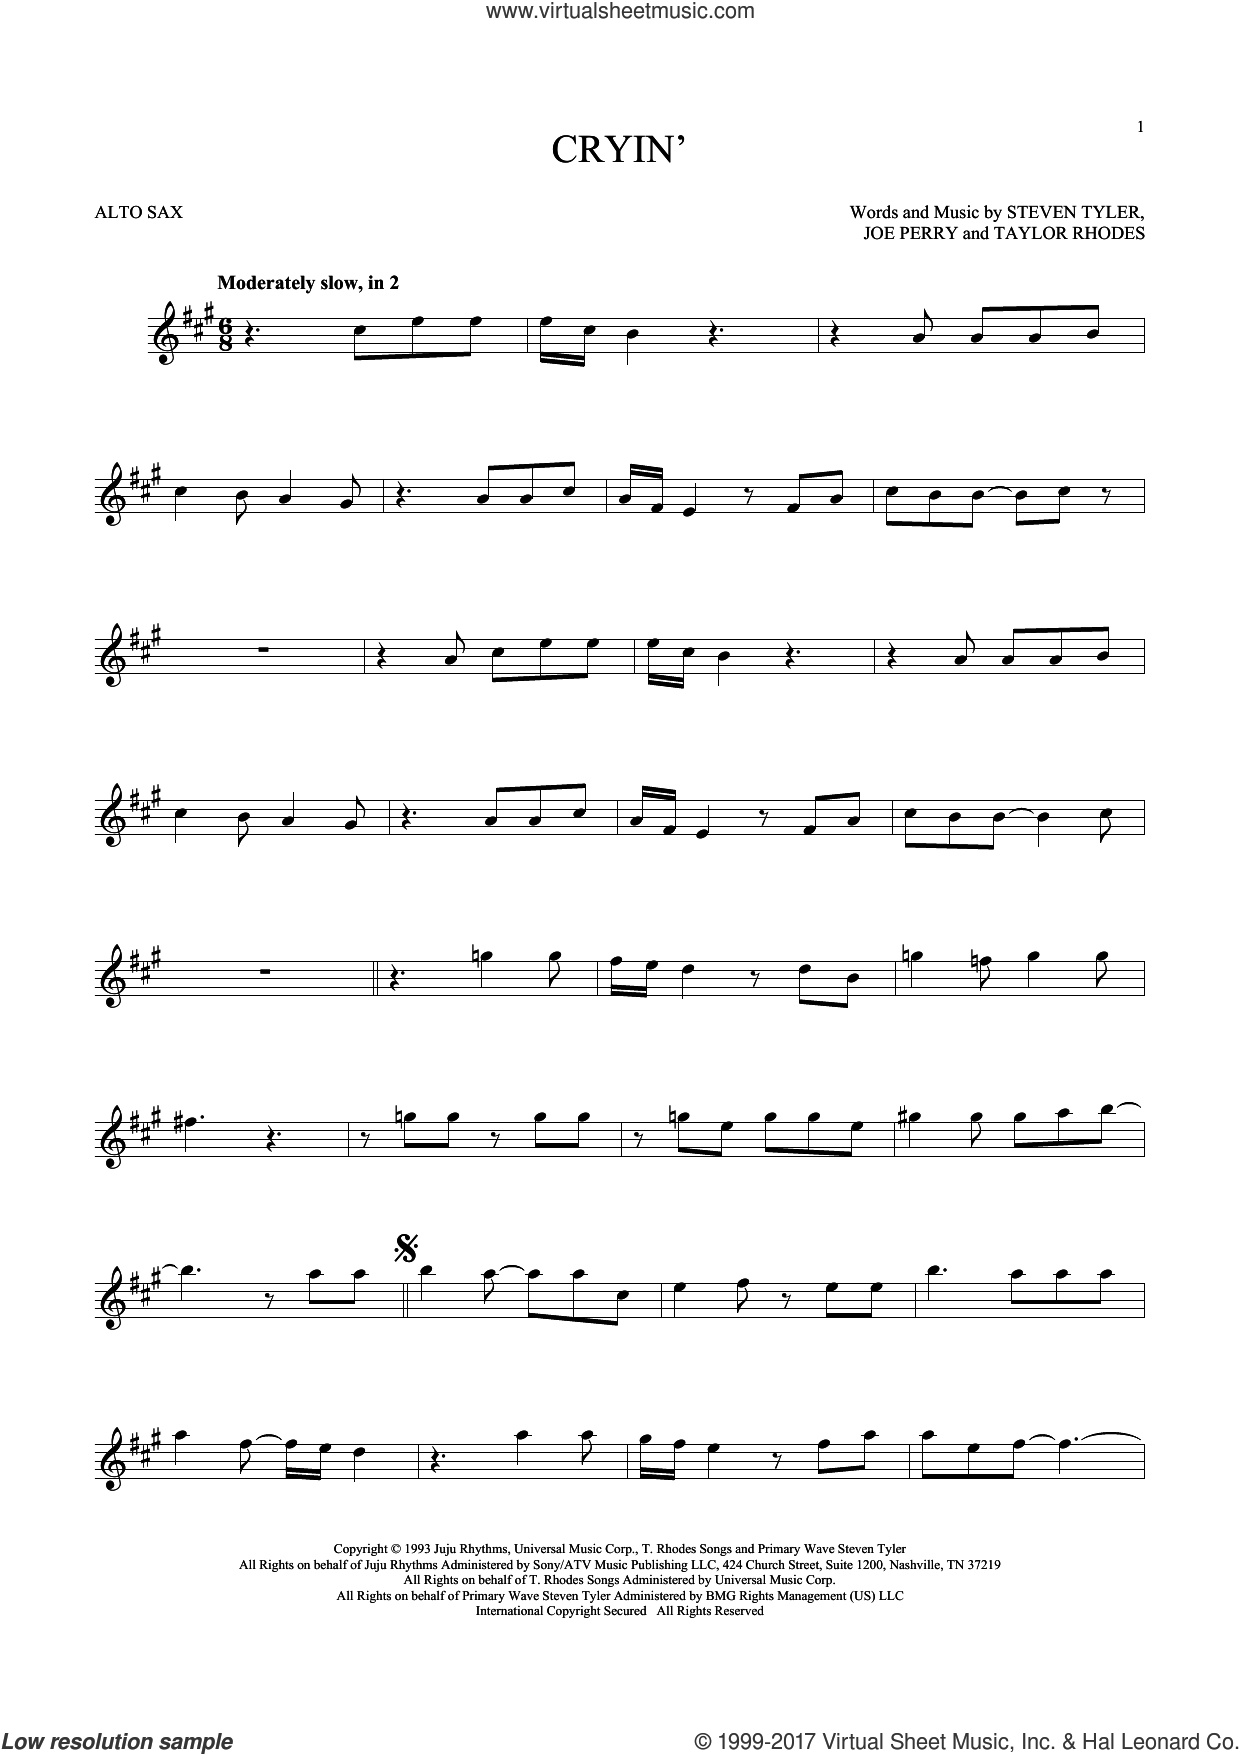 Cryin' sheet music for alto saxophone solo by Aerosmith, Joe Perry, Steven Tyler and Taylor Rhodes, intermediate skill level